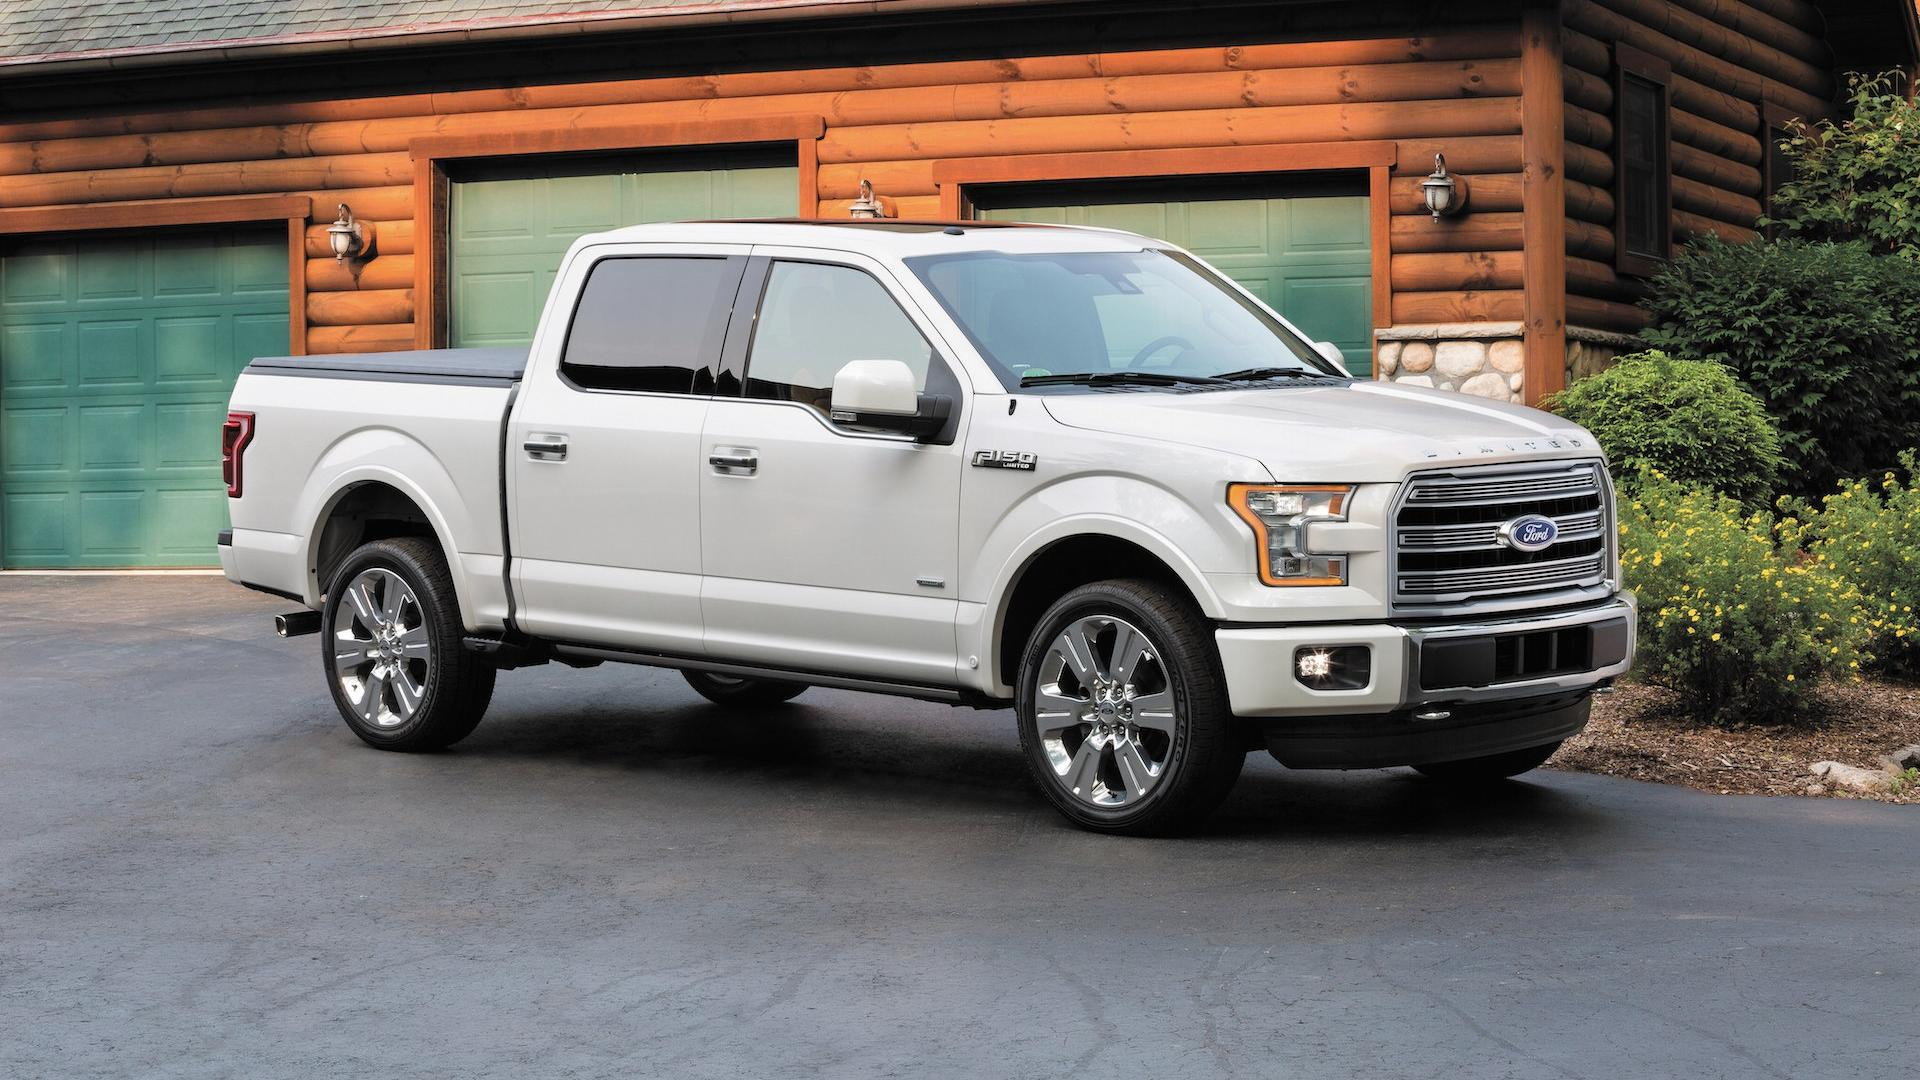 Ford F-150 Discount Reaches Nearly $12k Depending On Where You Live